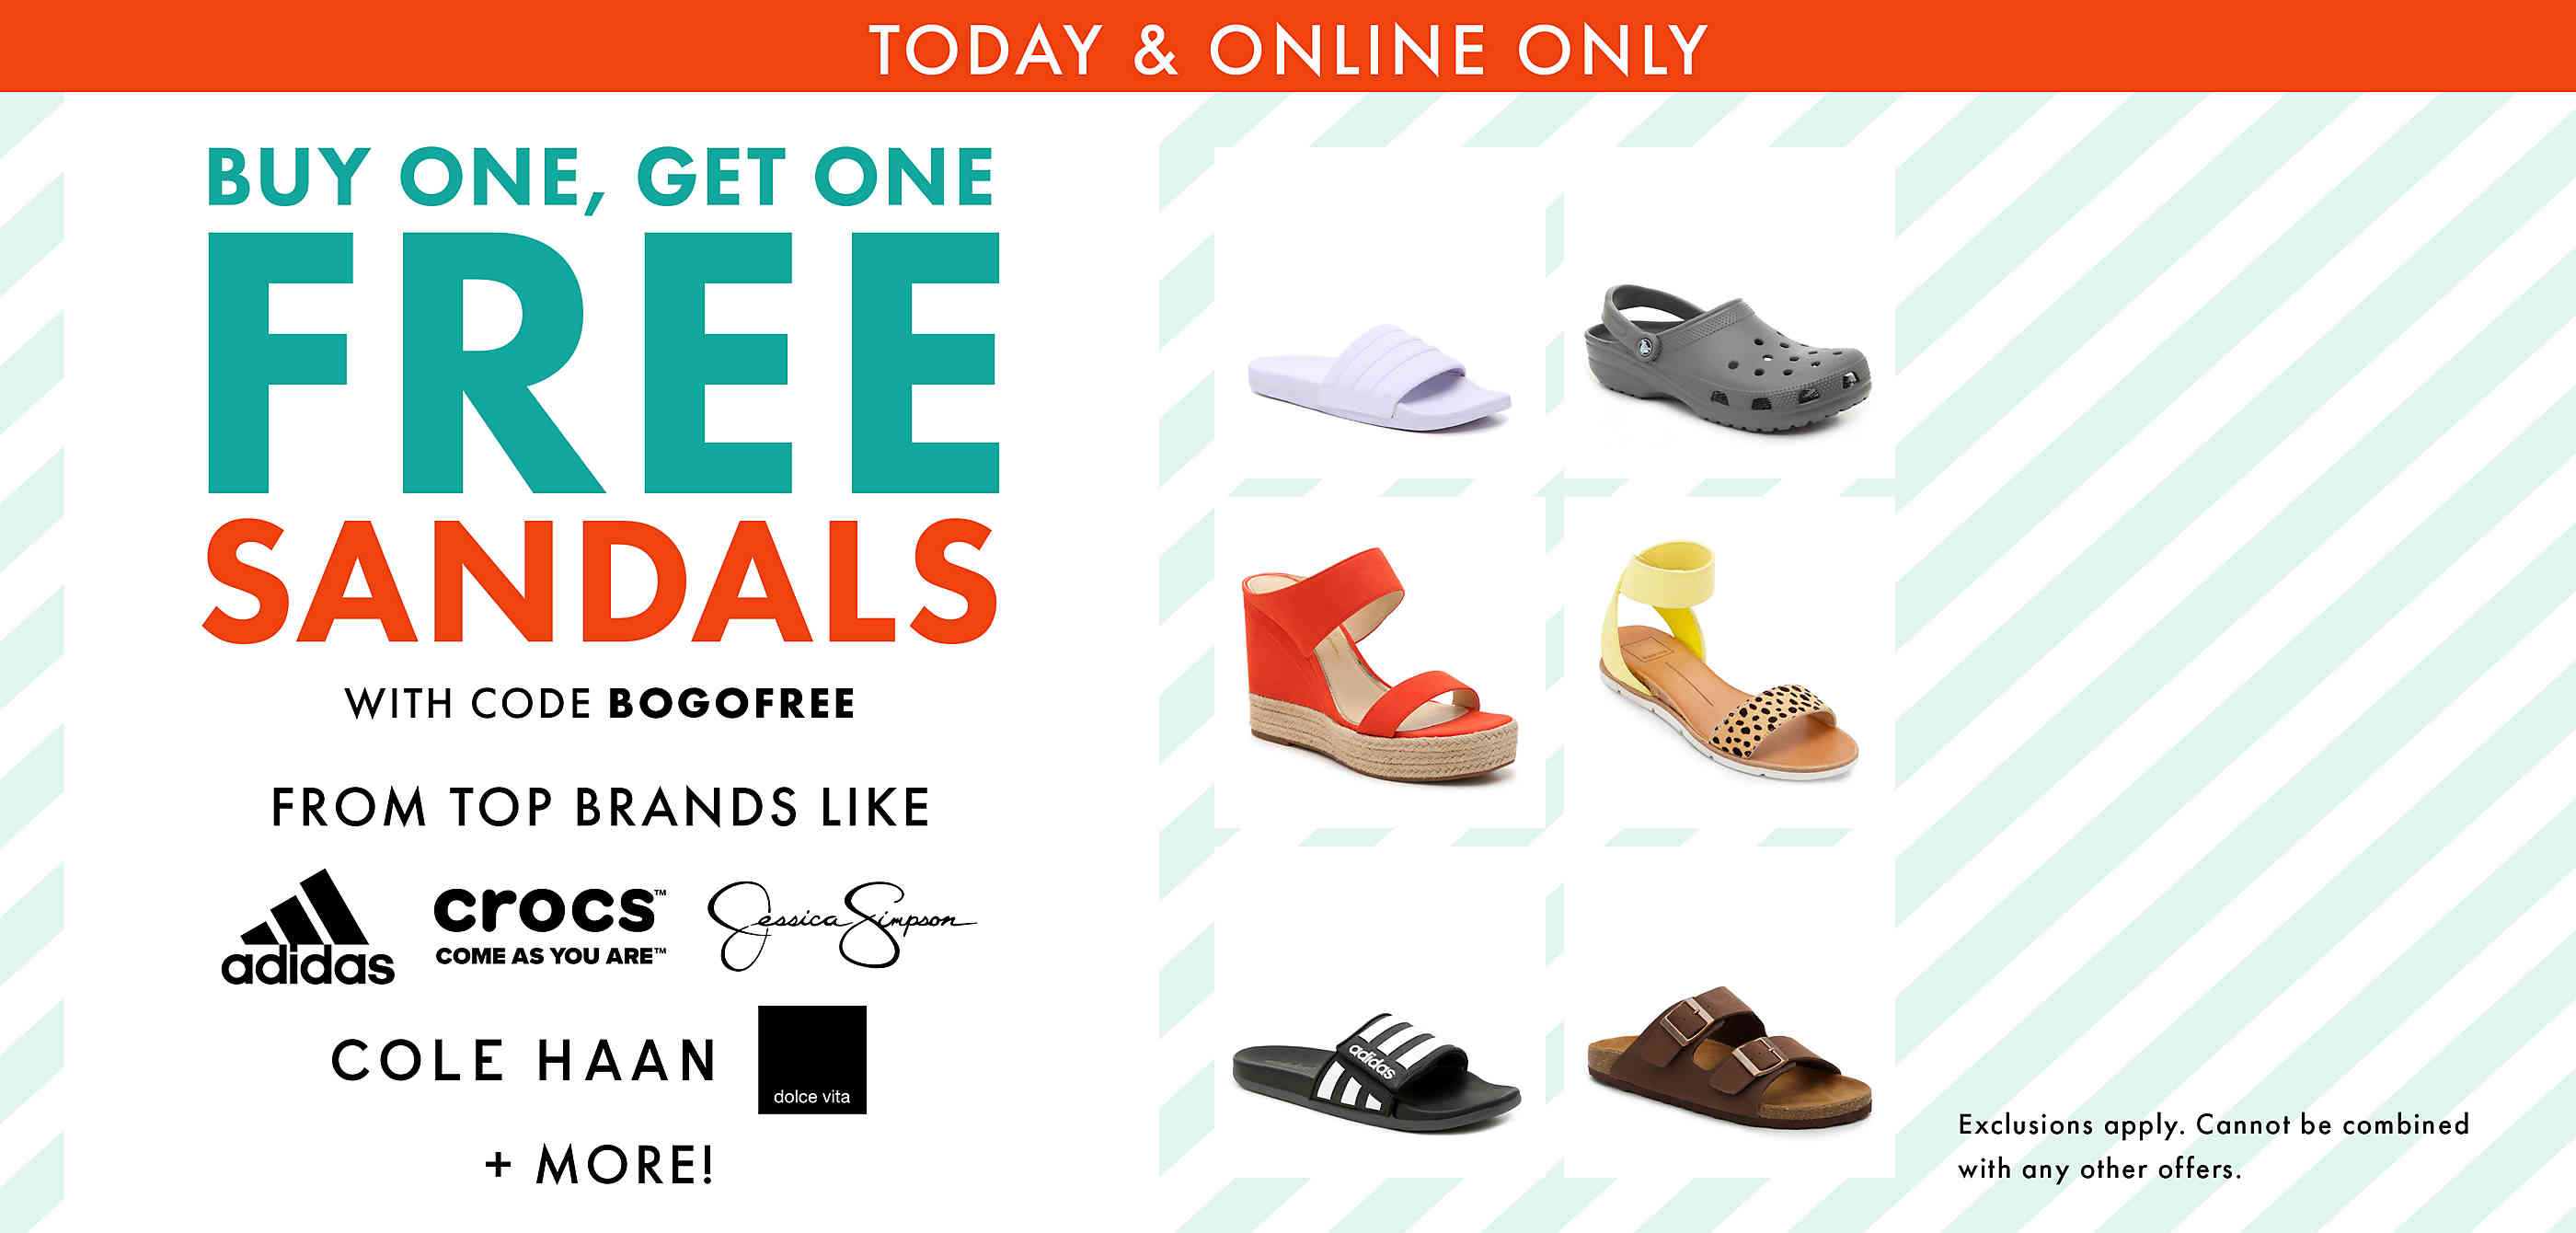 Today and online only buy one get one free sandals with code BOGOFREE. Exclusions apply. Cannot be combined with any other offer.